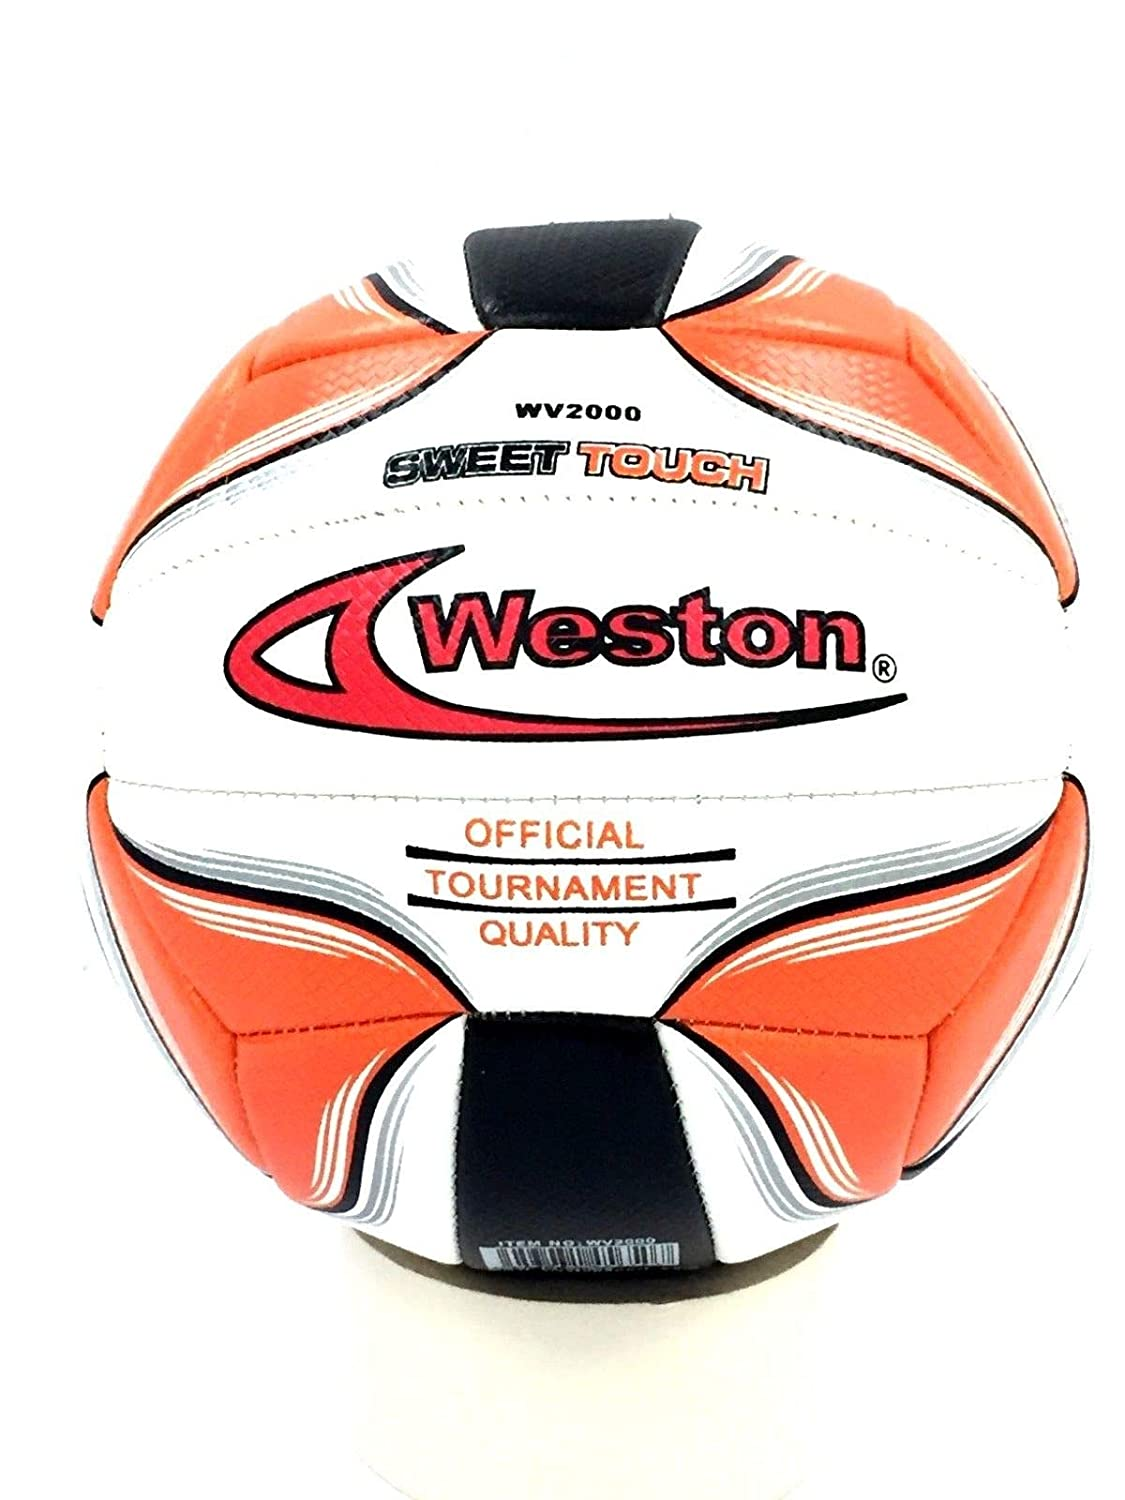 Weston WV2000 Sweet Touch - Balón de Voleibol de Playa: Amazon.es ...